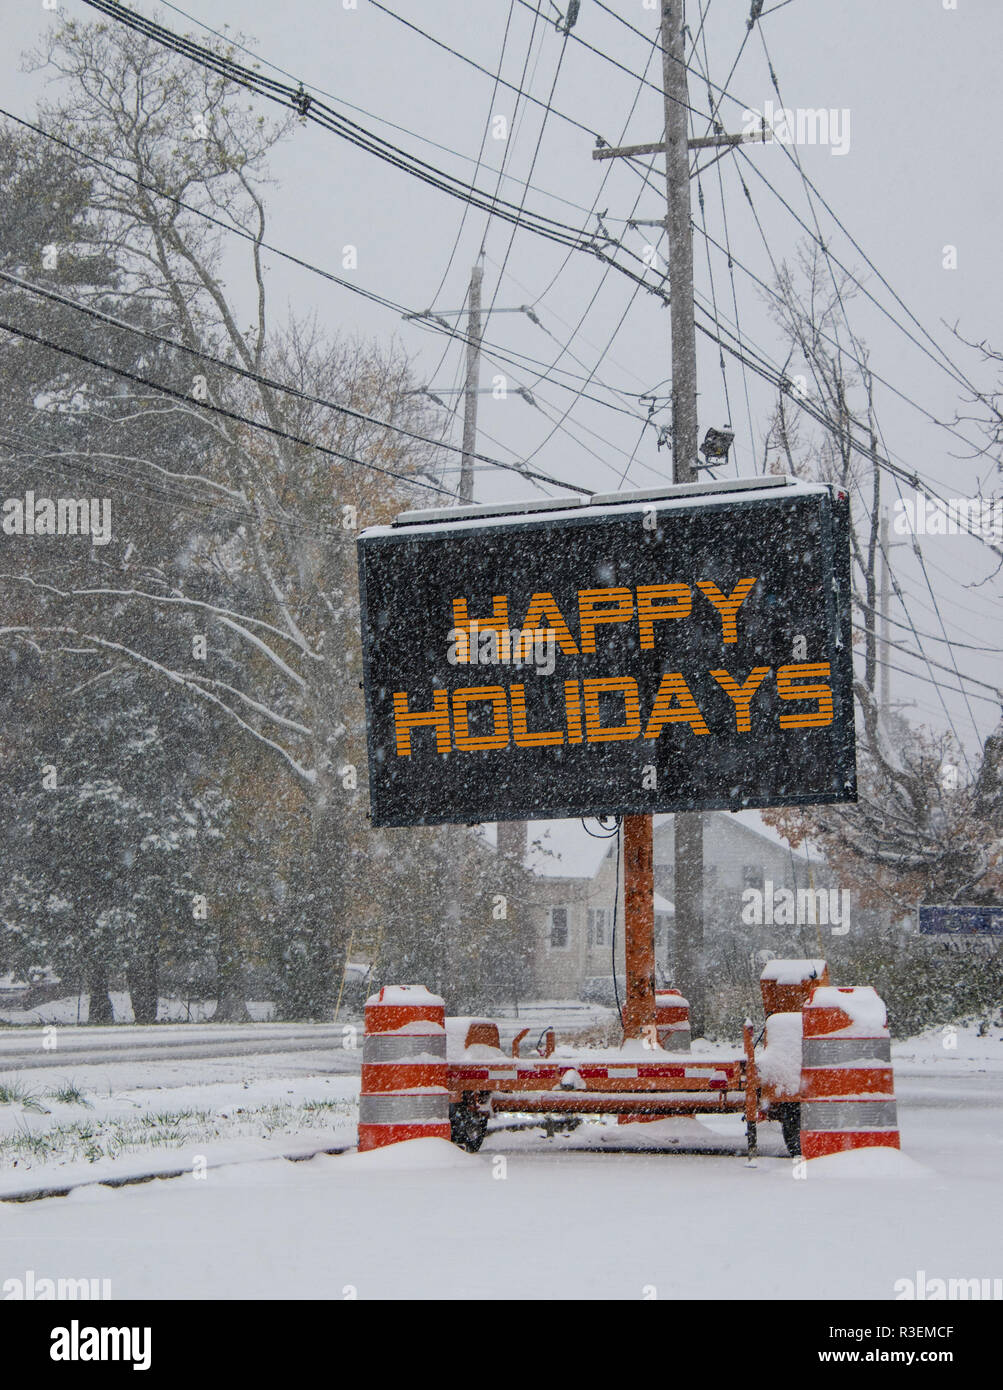 Electric road traffic mobile sign by the side of a snow covered road with snow falling that says, Happy Holidays - Stock Image